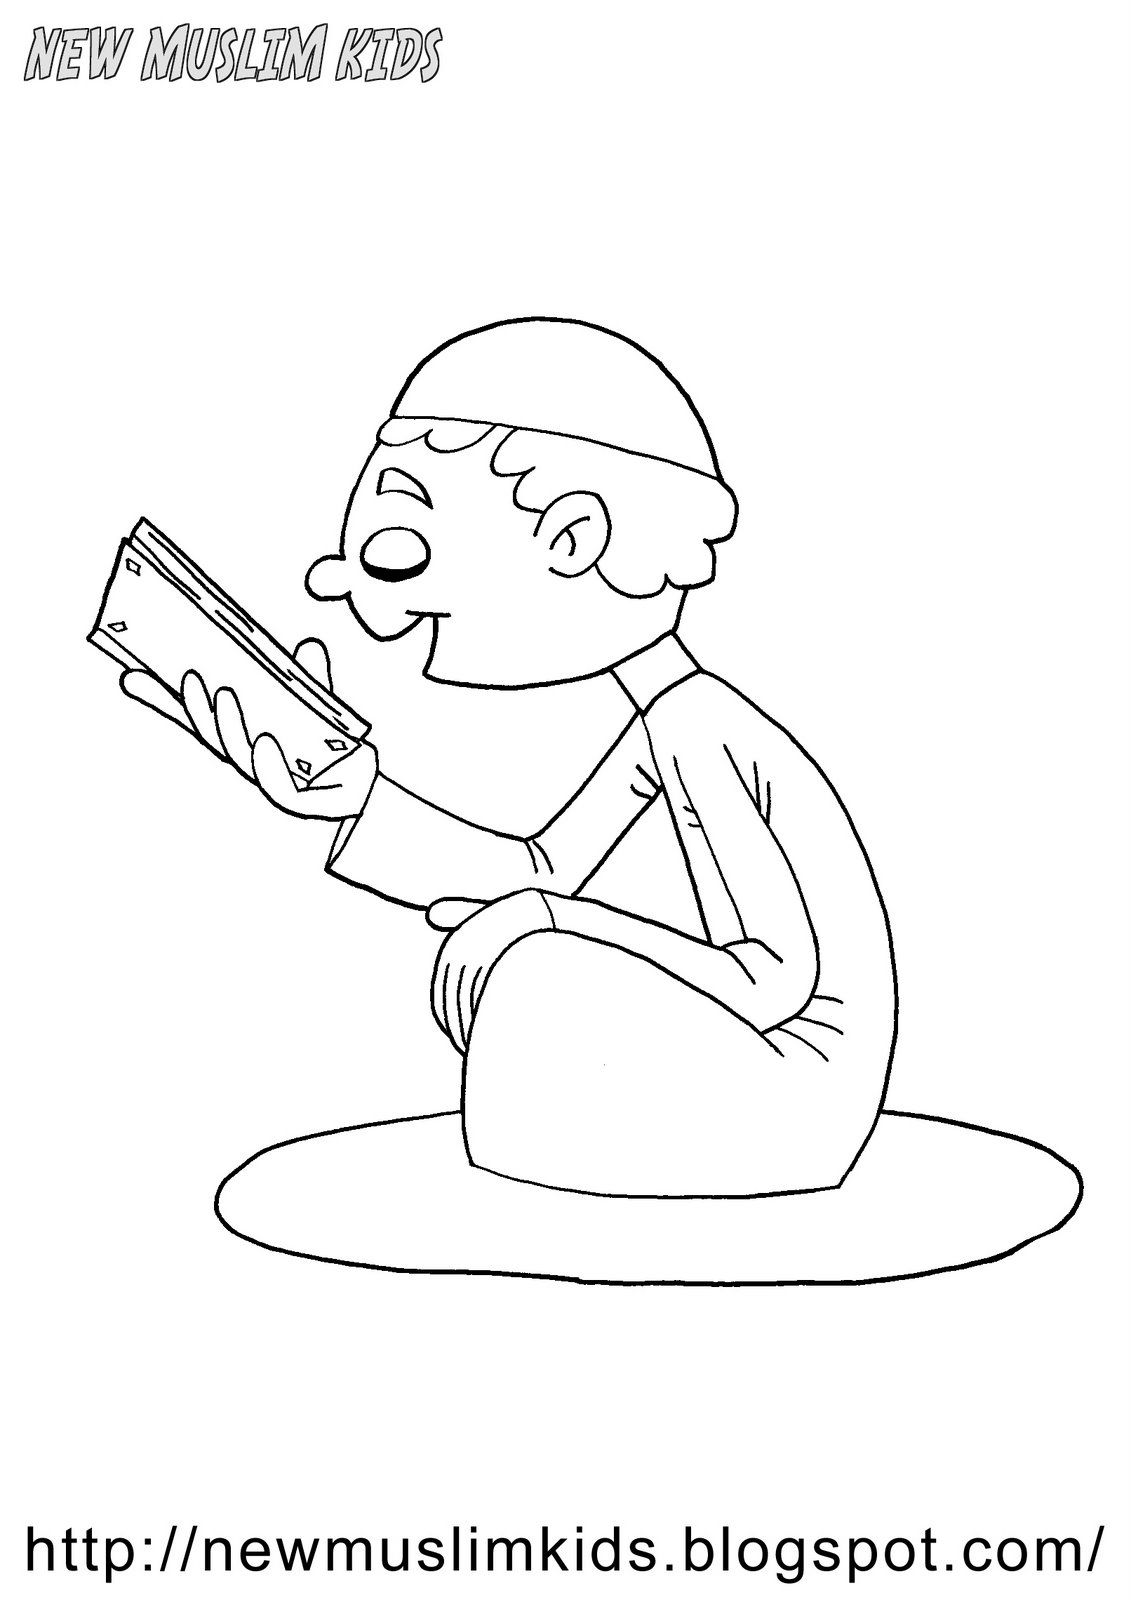 Reading Quran Coloring Page | Ramadan Activities | Pinterest | Quran ...